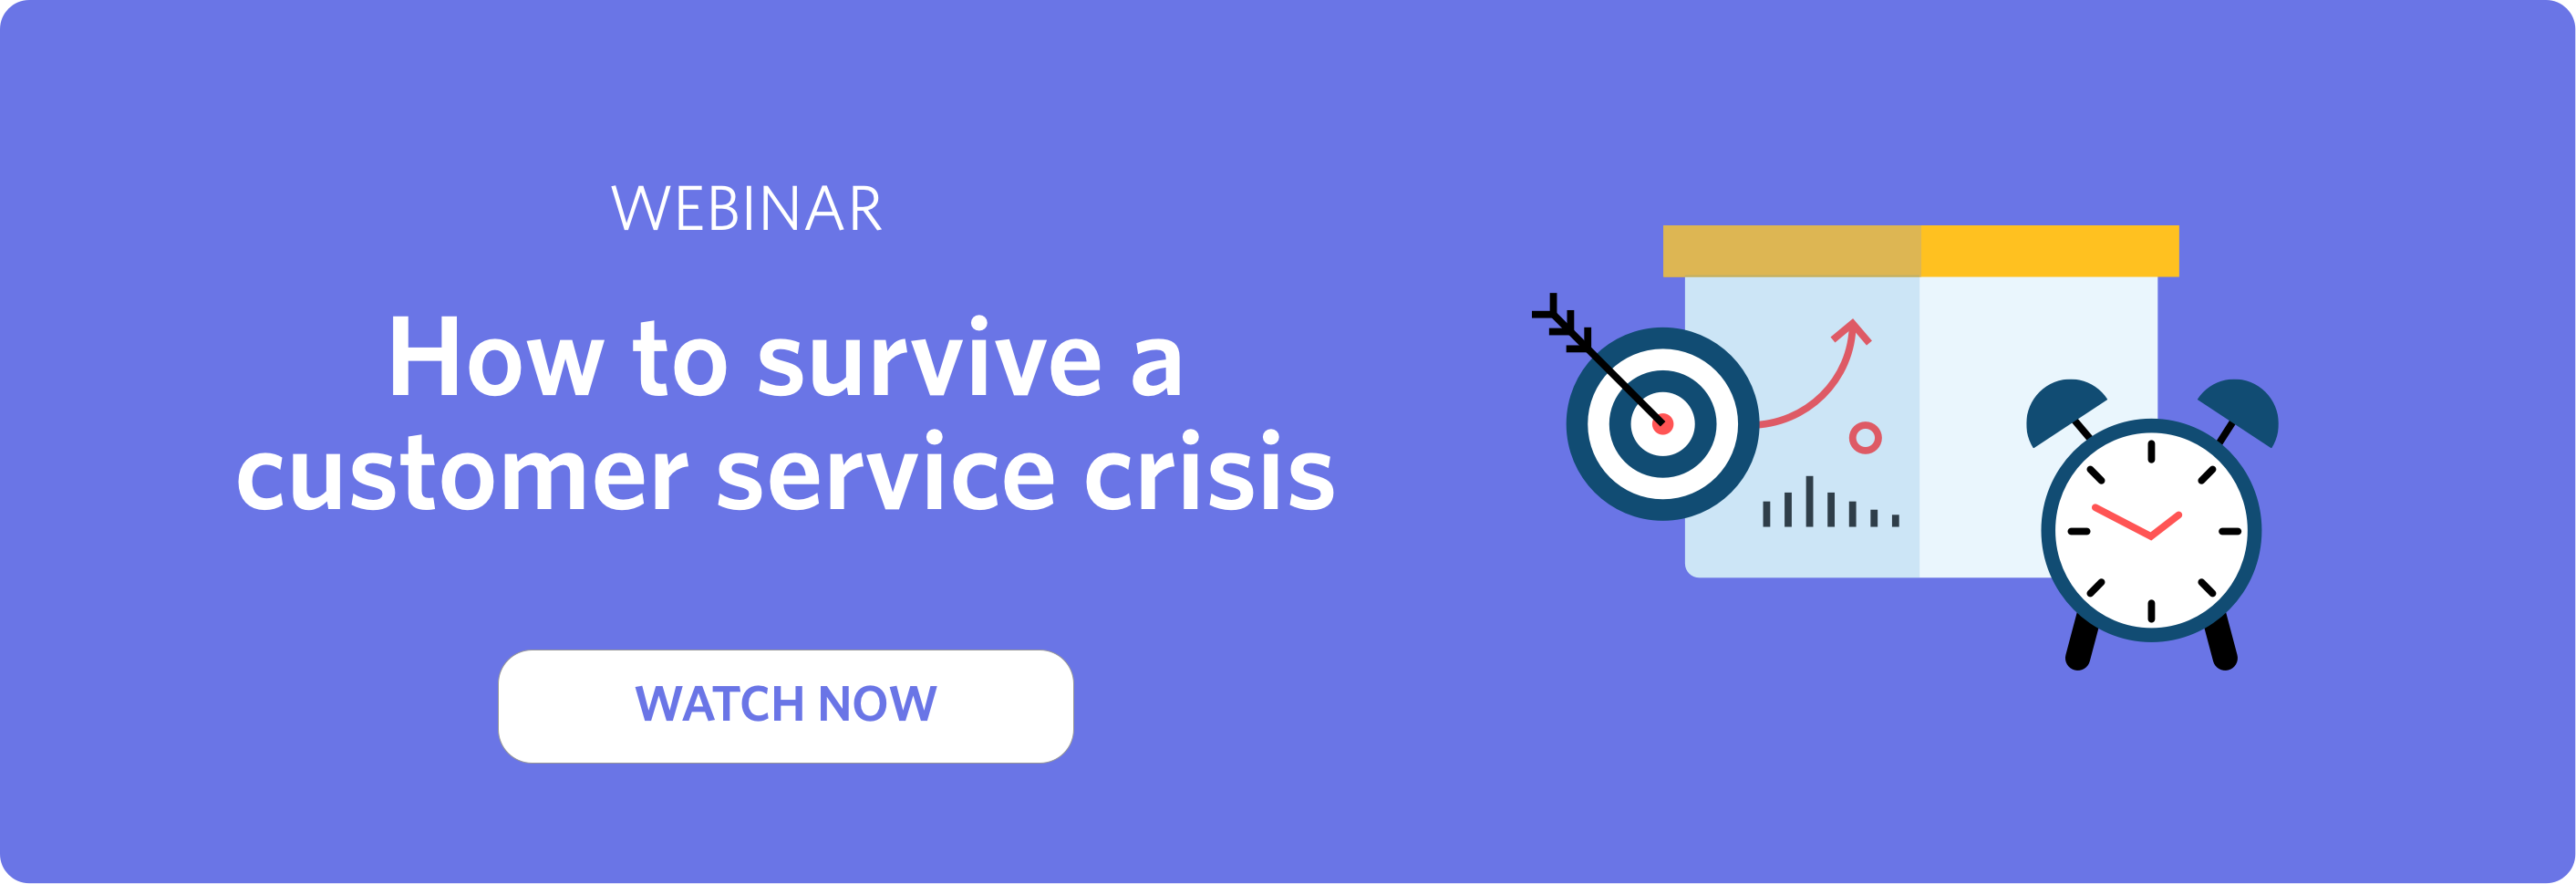 How to survive a customer service crisis